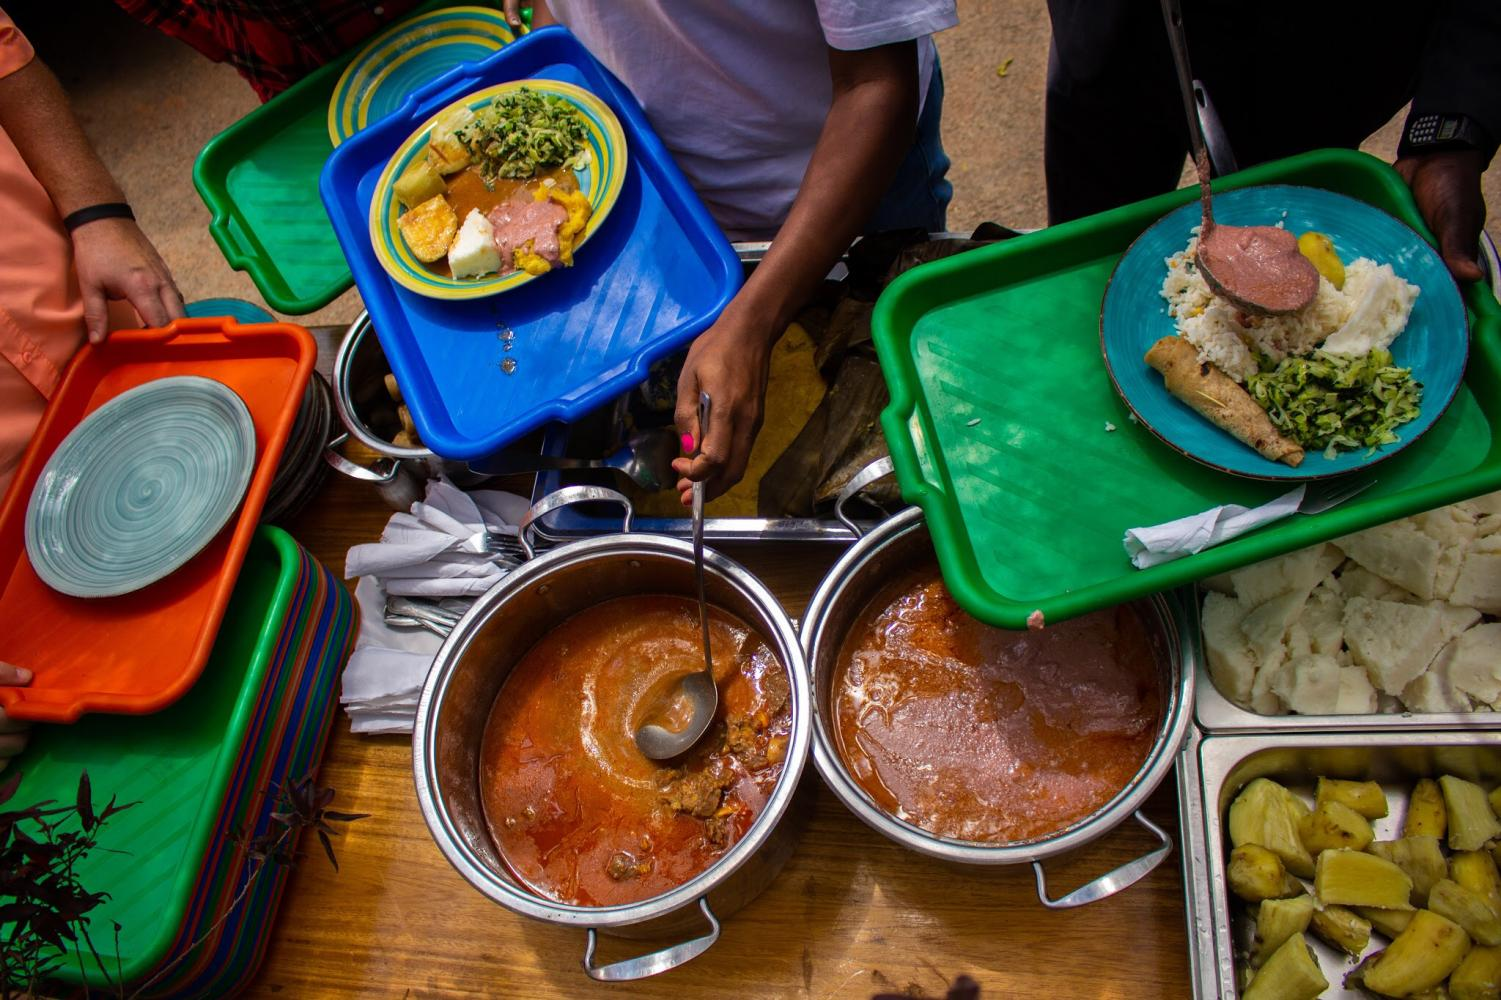 The+local+food%2C+consisting+of+Ugali+%28a+ground-nut+sauce%29+goat+meat%2C+yams%2C+bananas%2C+rice%2C+and+more